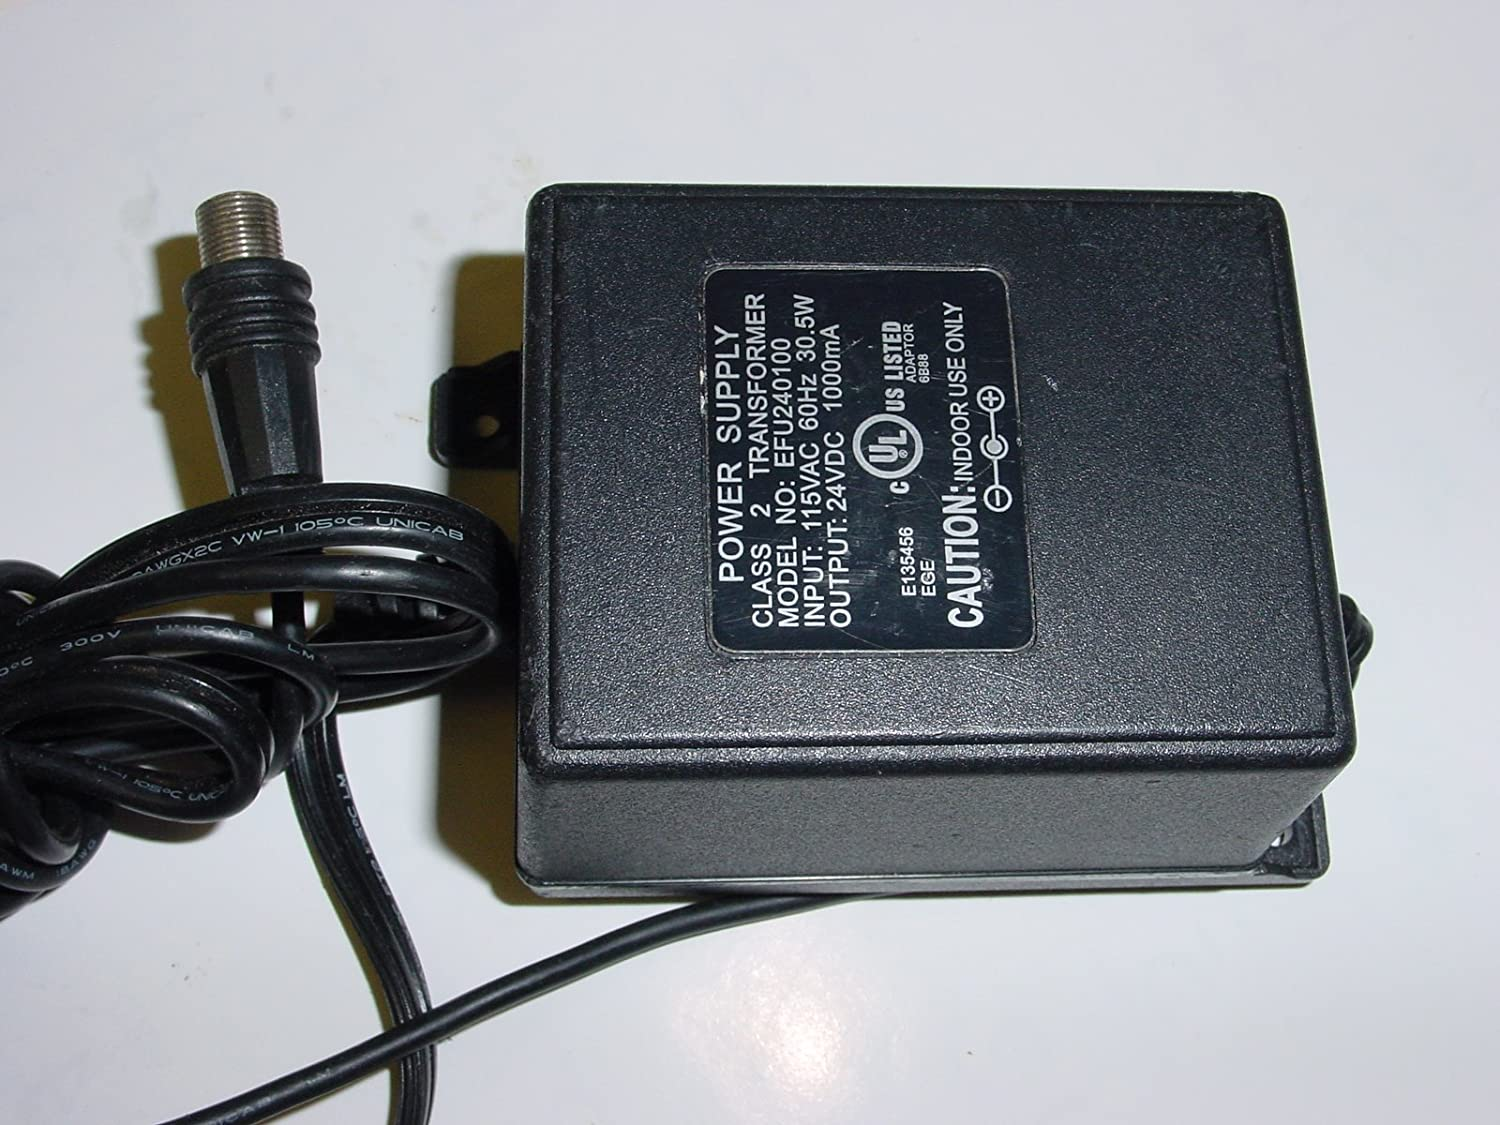 Amazon.com: Power Supply Adapter Coaxial Port EFU240100 ...